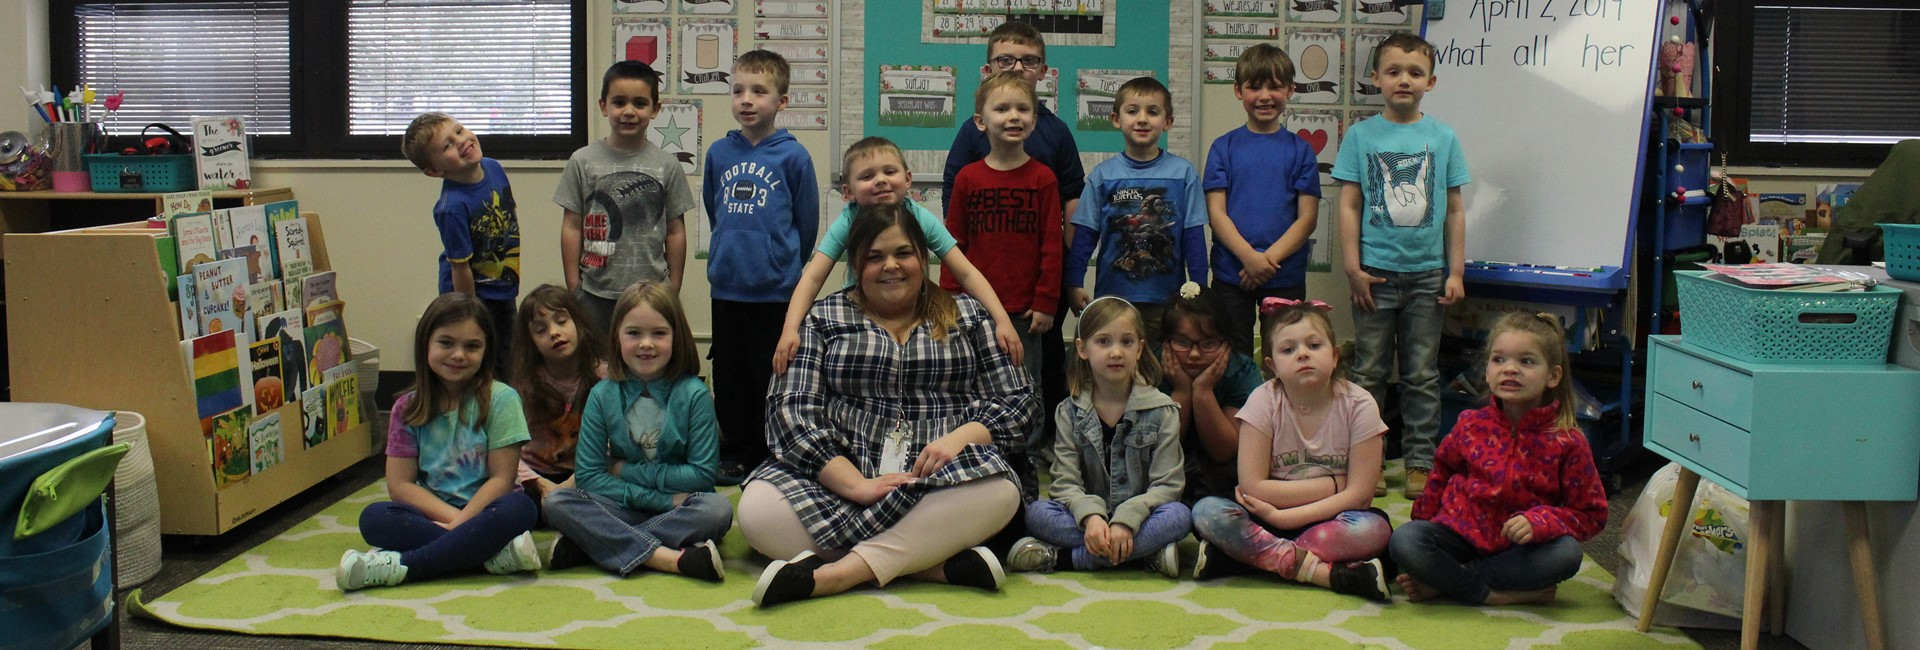 Miss Allender's Class - World Autism Awareness Day